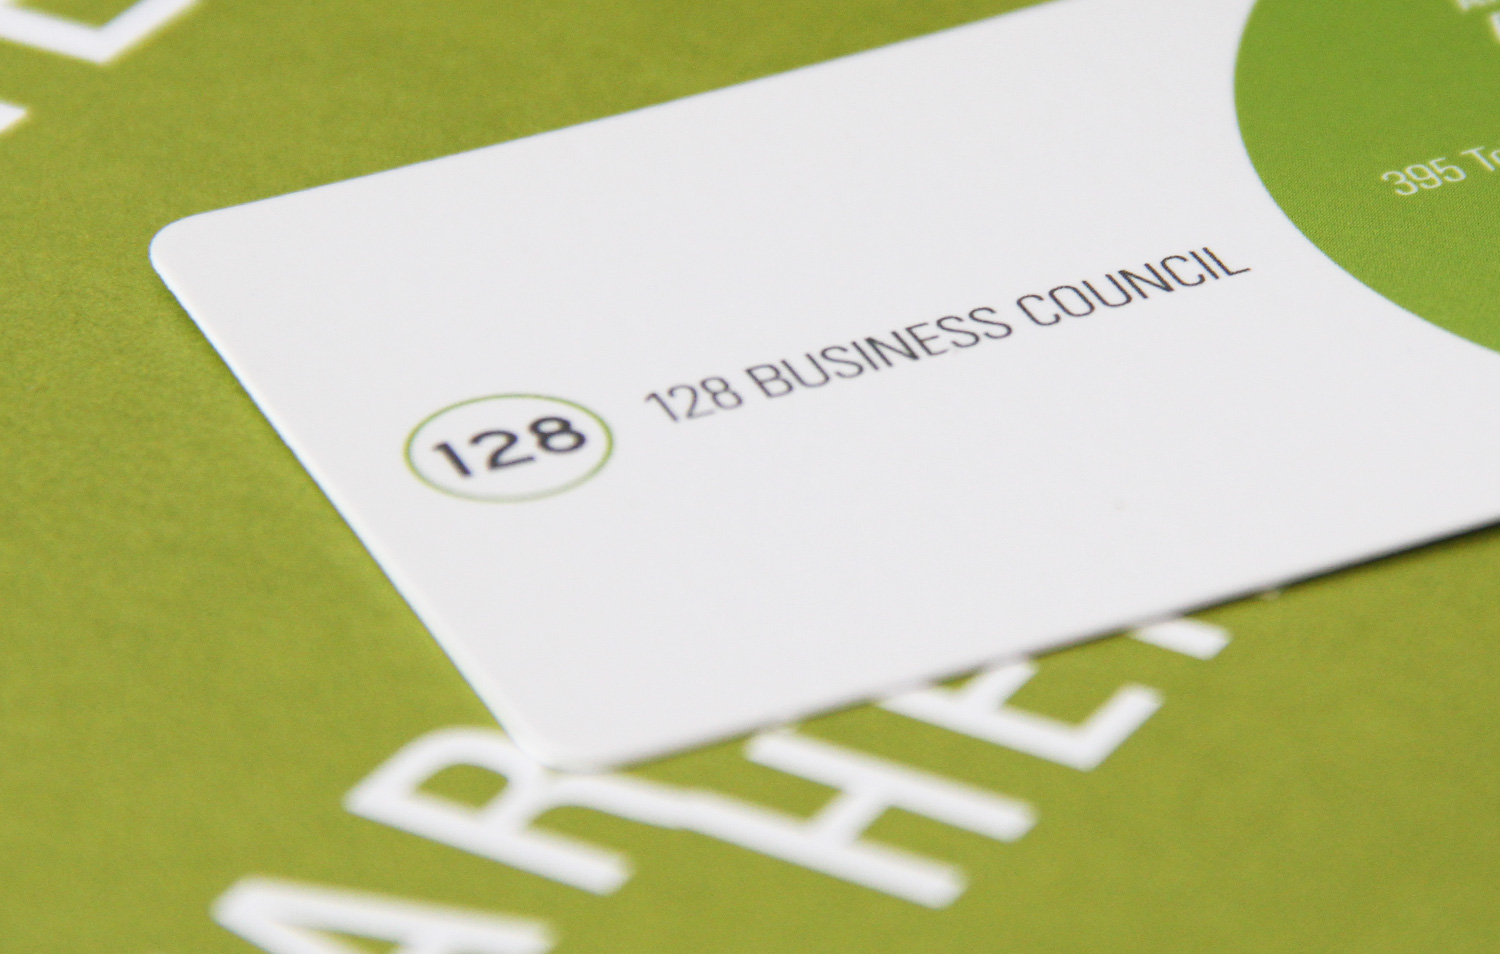 128 Business Council branding